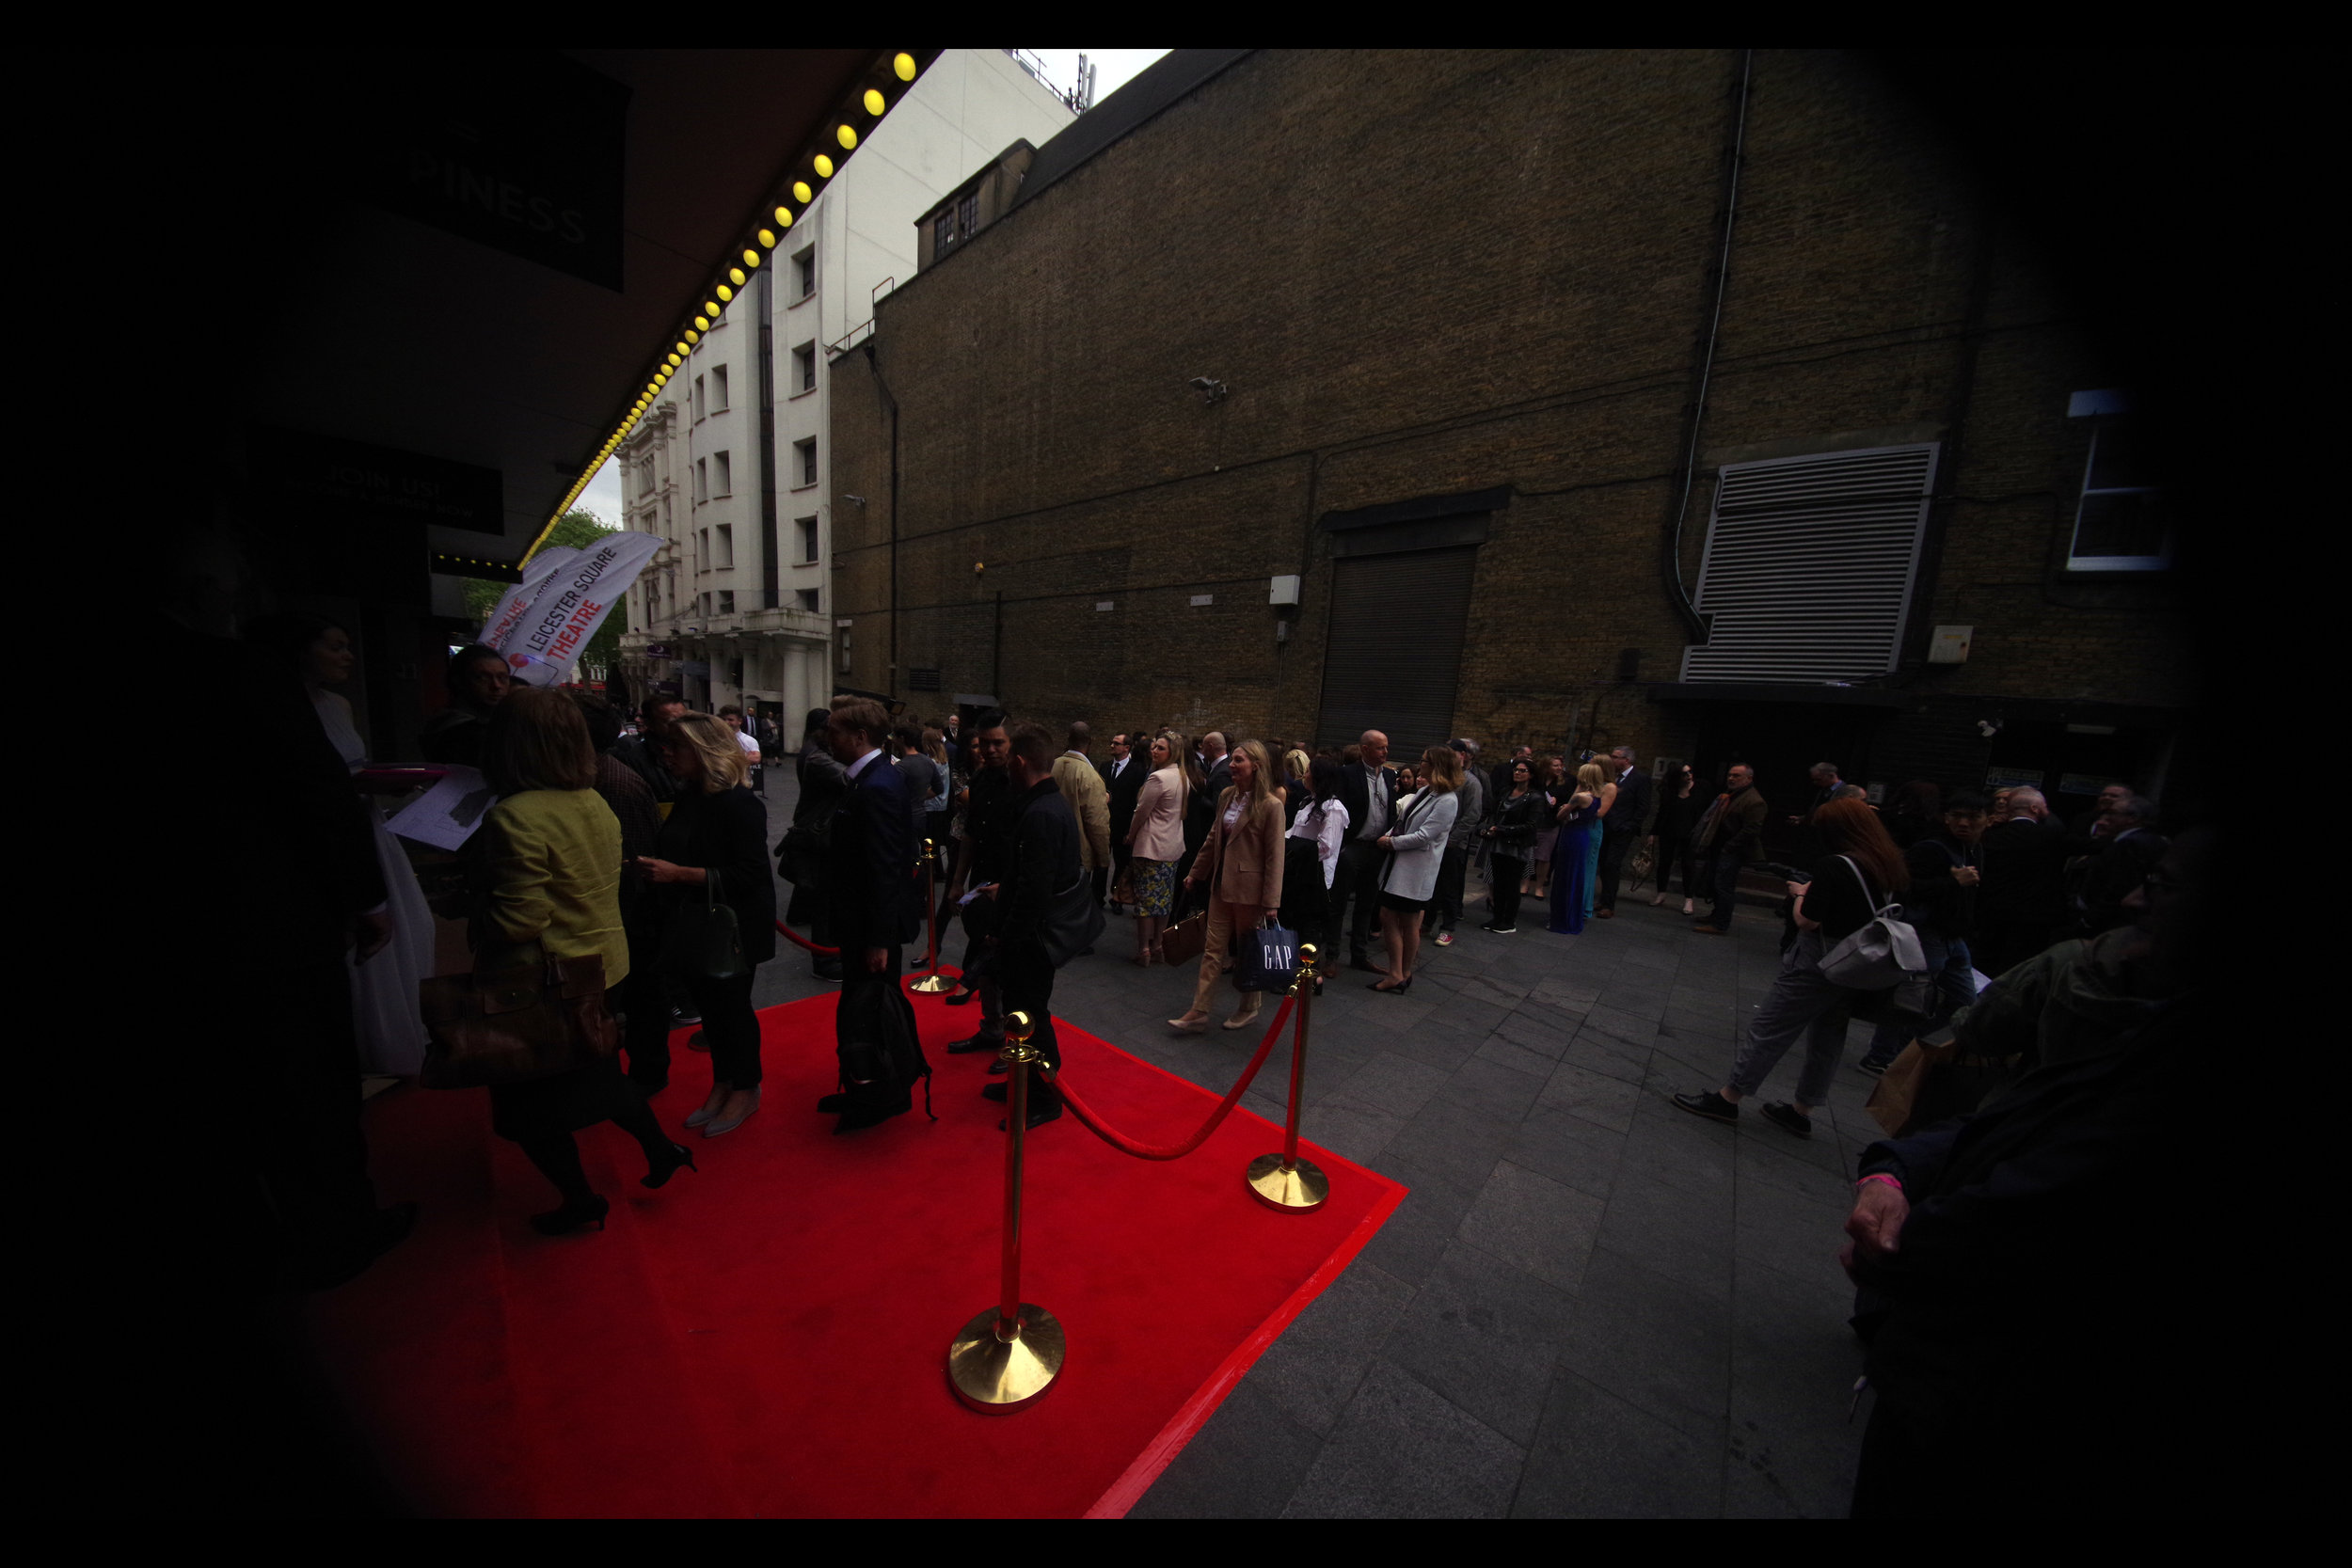 The square meterage of the red carpet at this premiere was small, but it's not every world premiere that has the confidence not to put in place barriers or security staff to keep the hordes of fans and autograph dealers at bay.